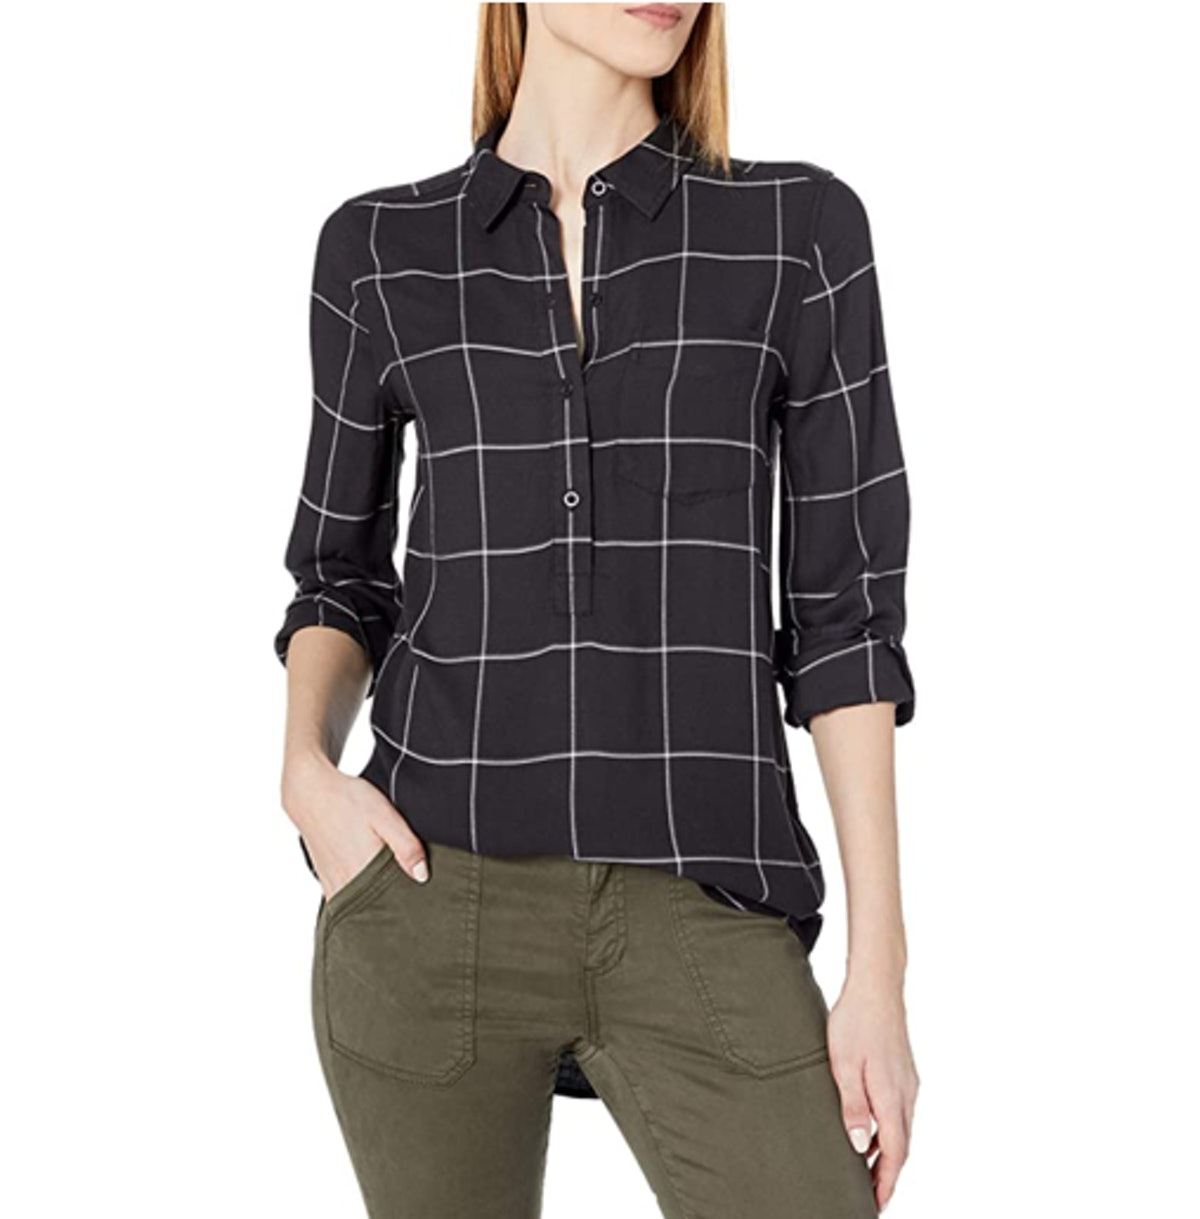 Daily Ritual Soft Rayon Popover Top